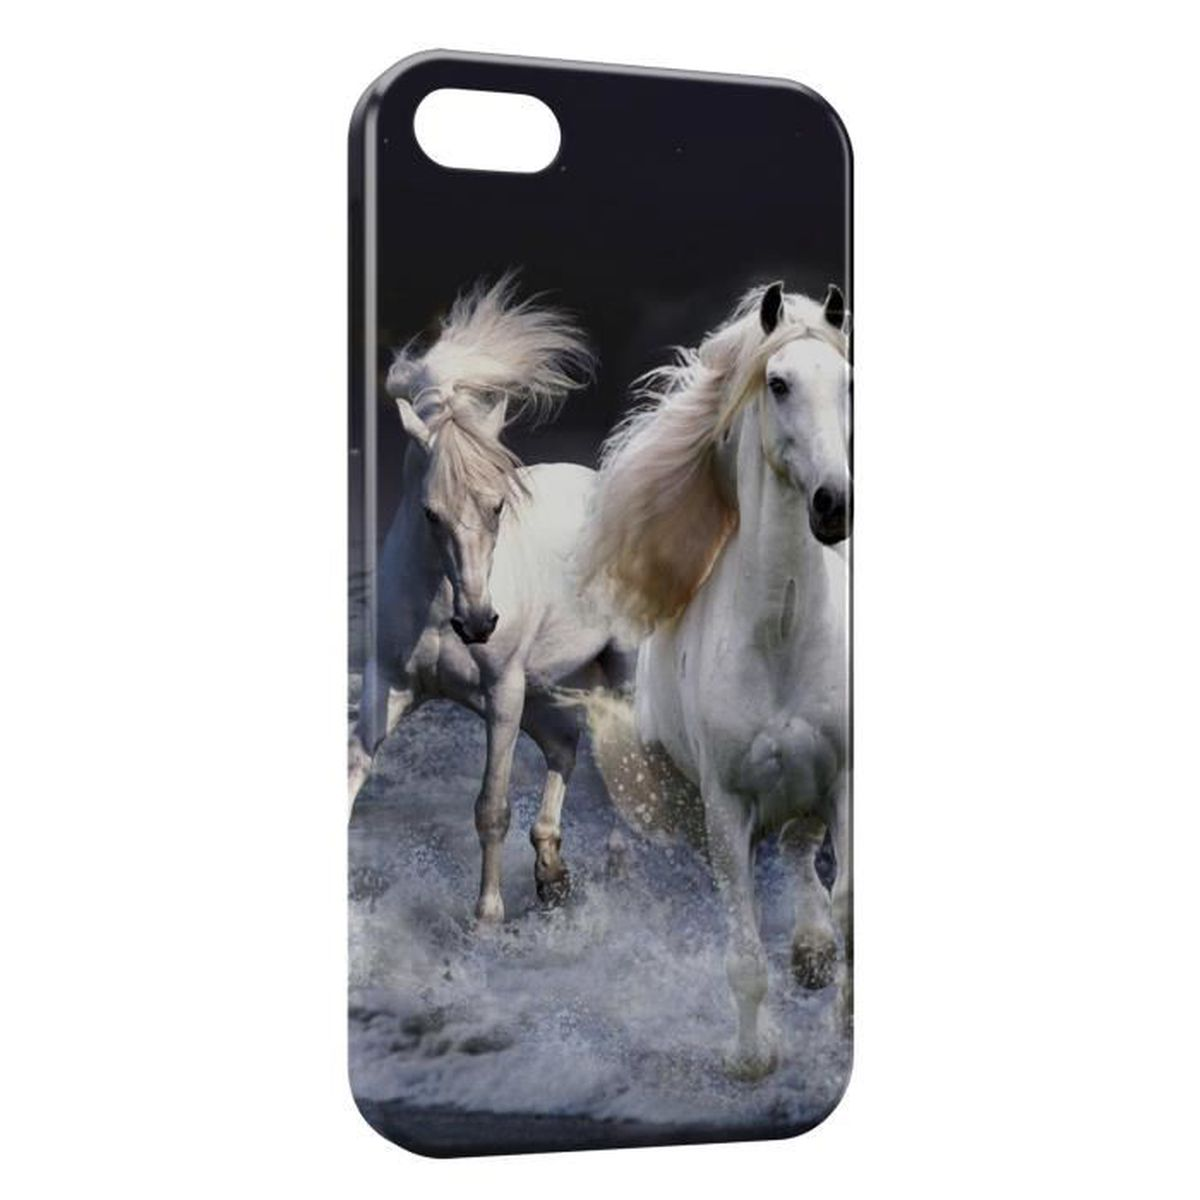 coque iphone 6 chevaux blancs water